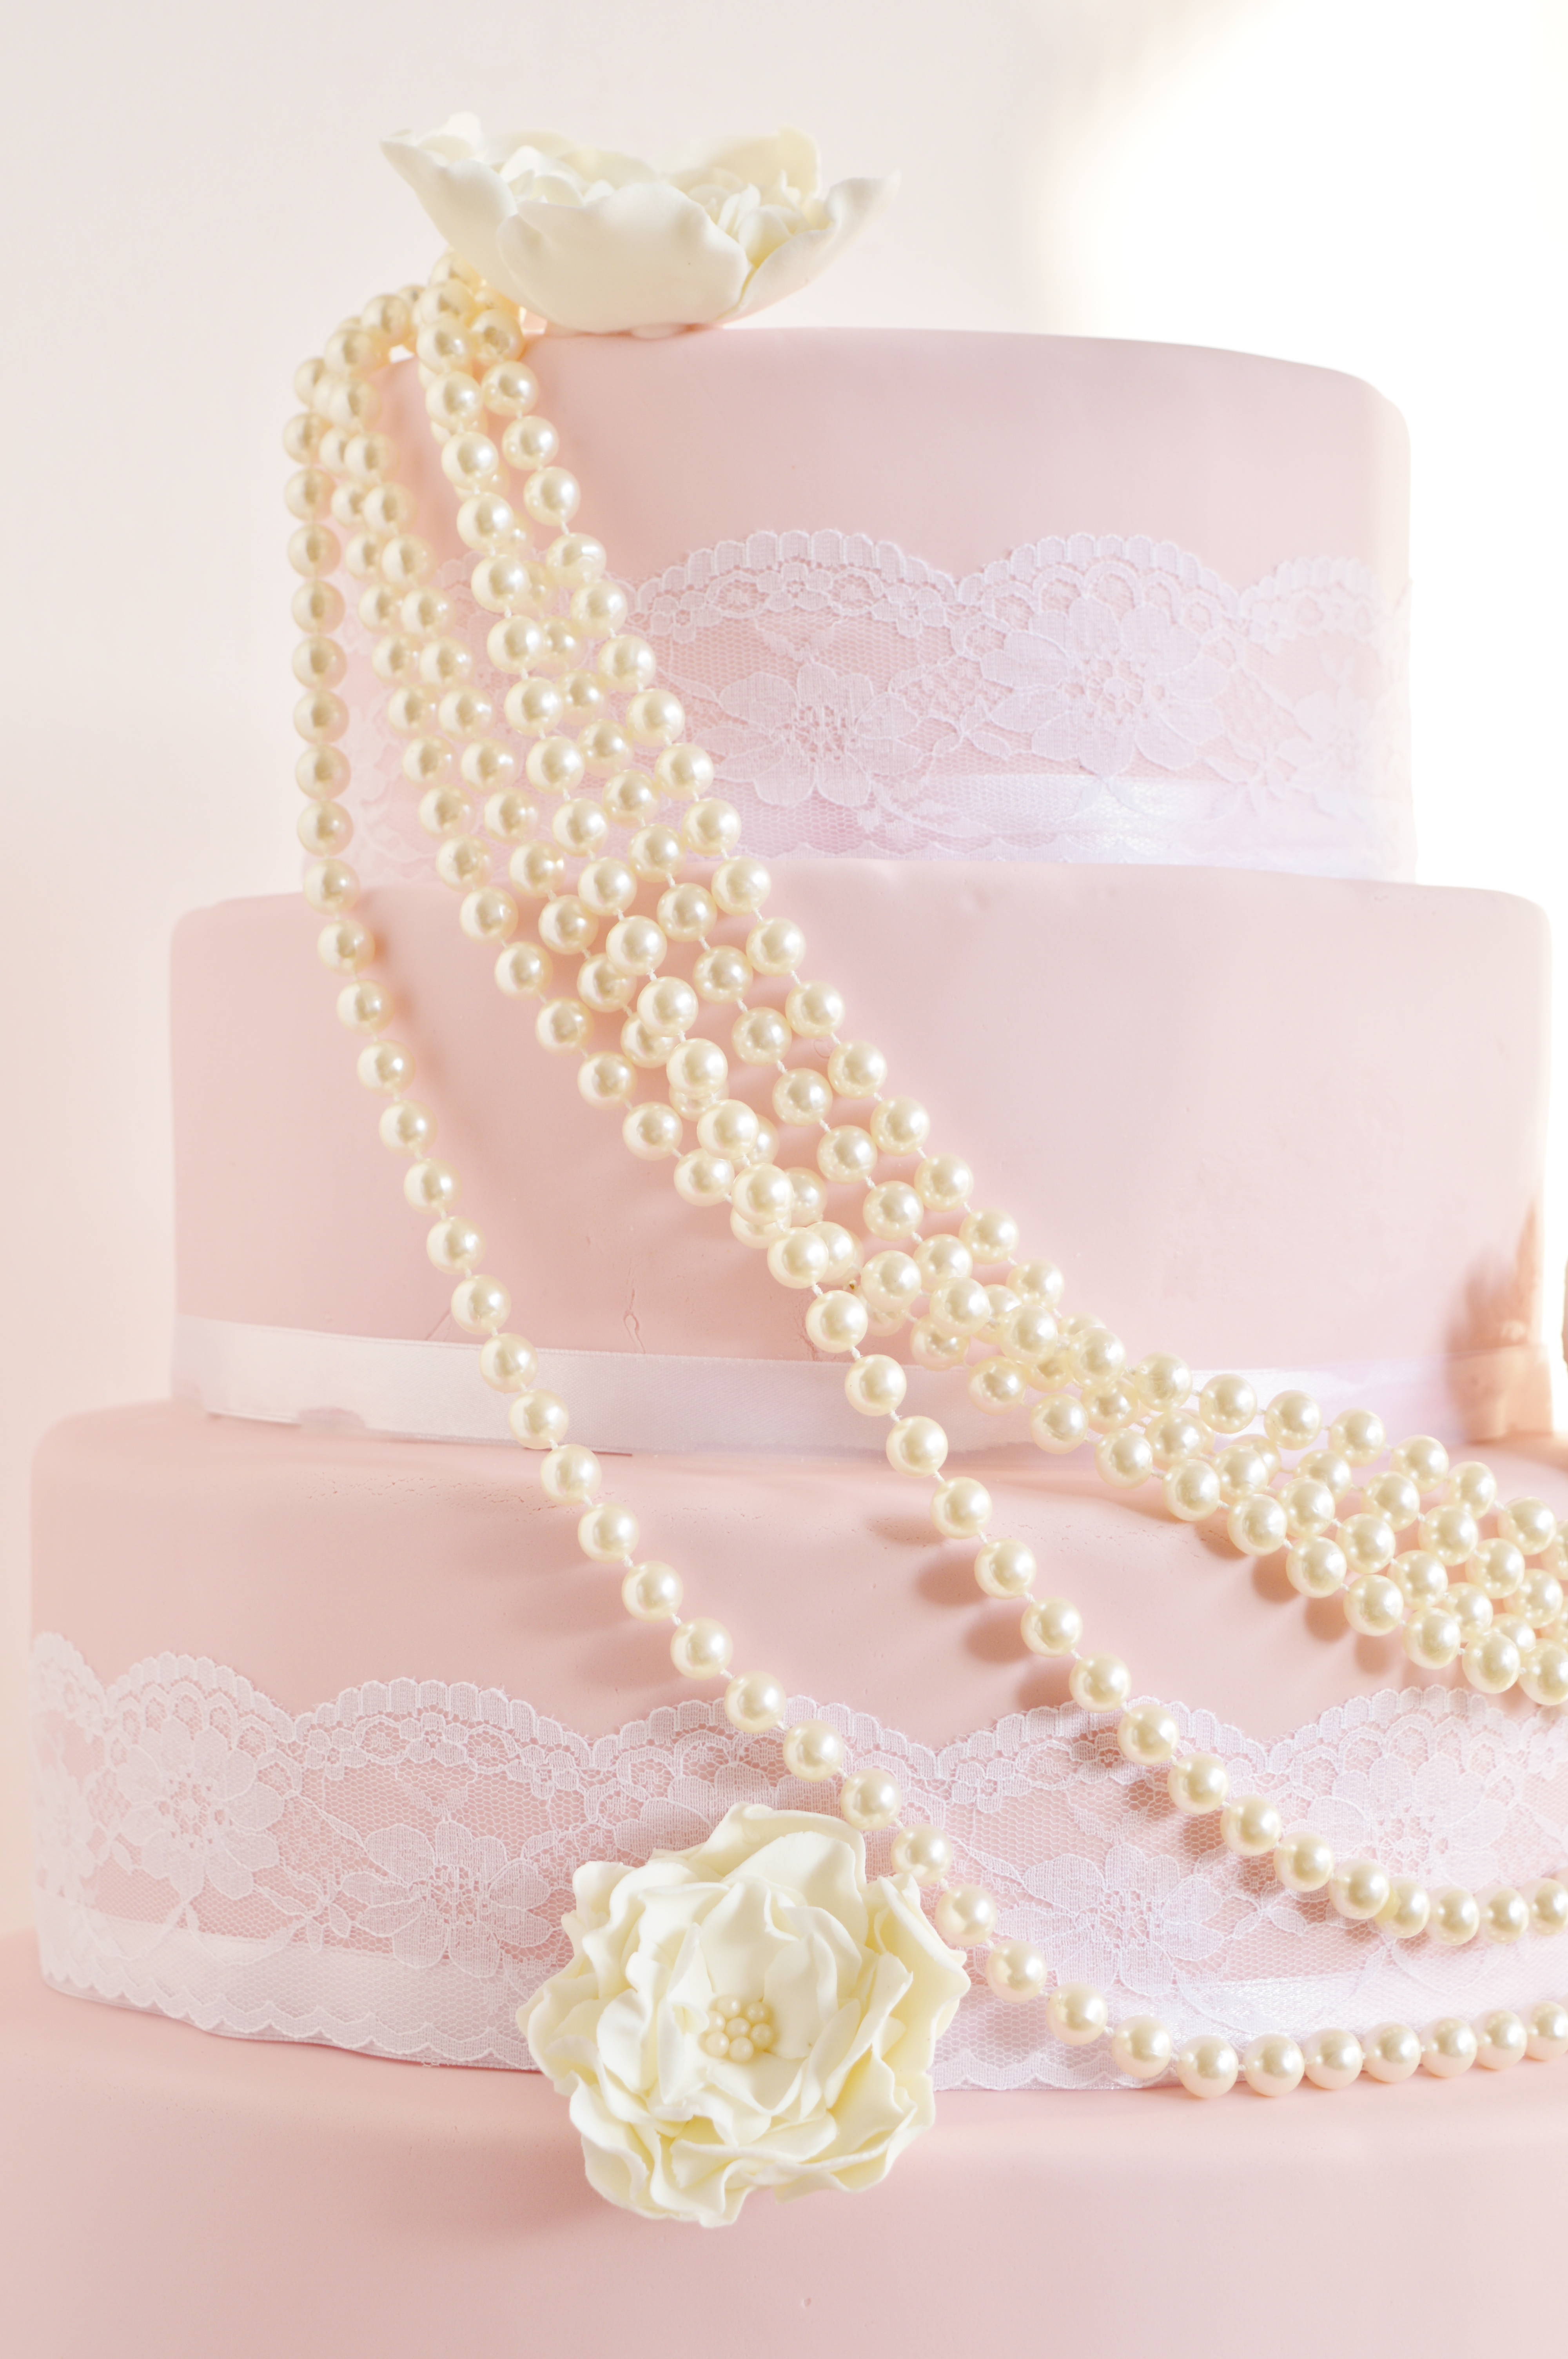 wedding cake pearls & lace order Den Haag, Roze trouwentaart